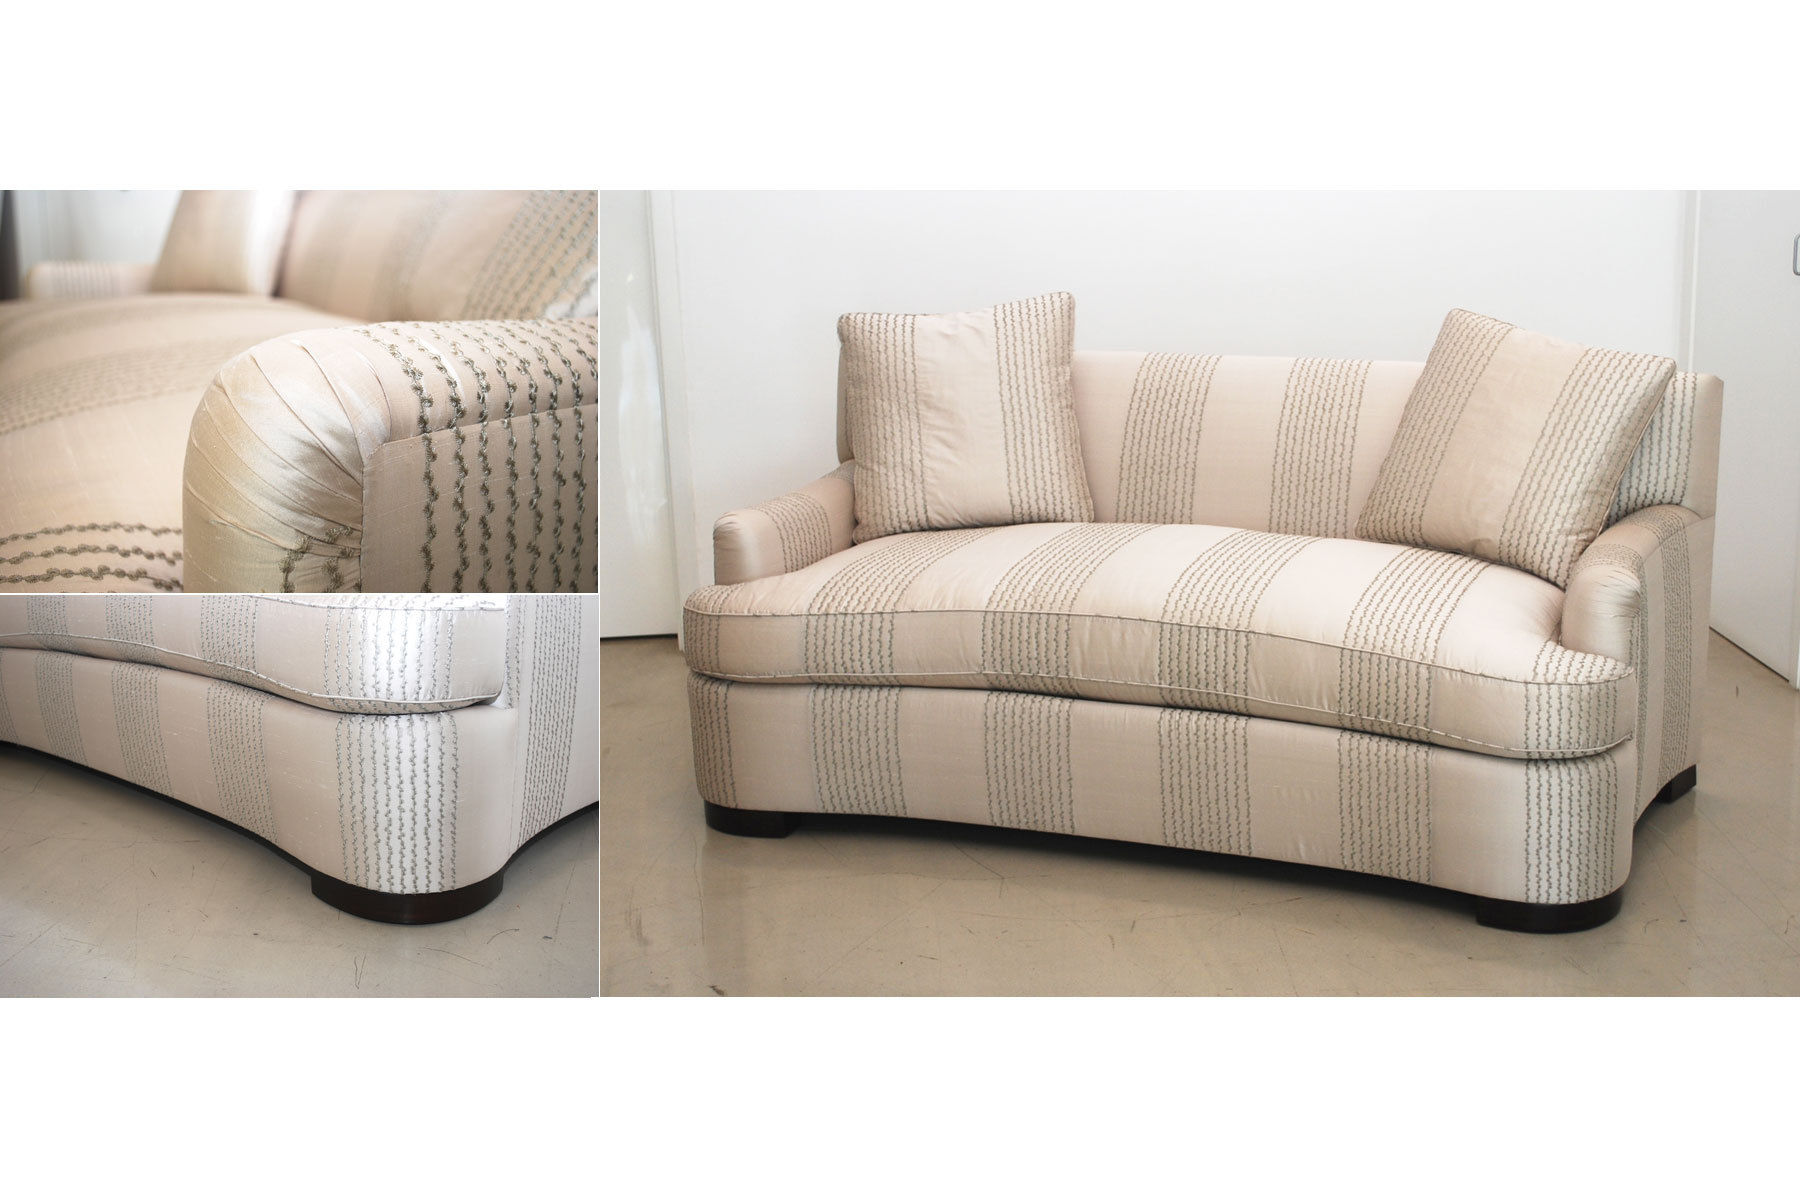 inspirational 7 seat sectional sofa pattern-Latest 7 Seat Sectional sofa Image